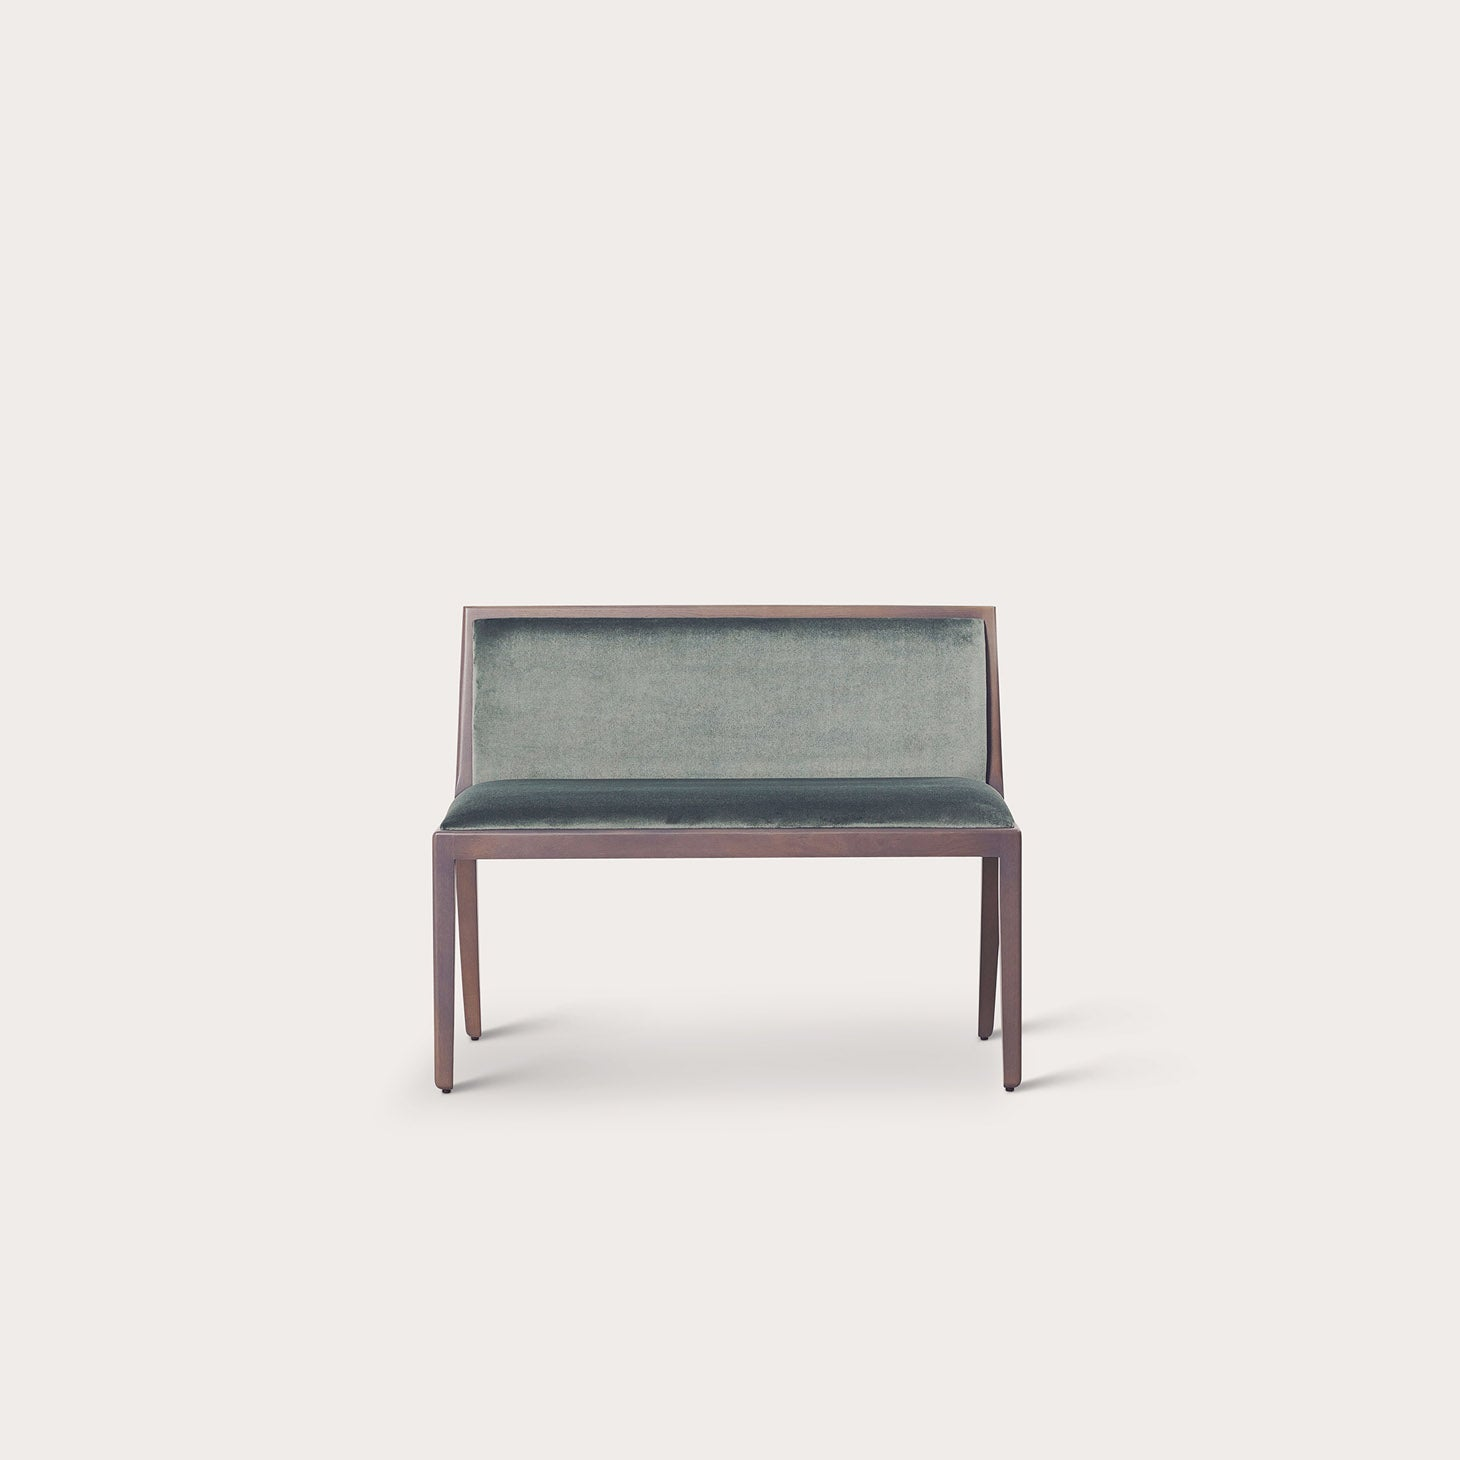 EOL Seating Christophe Delcourt Designer Furniture Sku: 008-300-10000